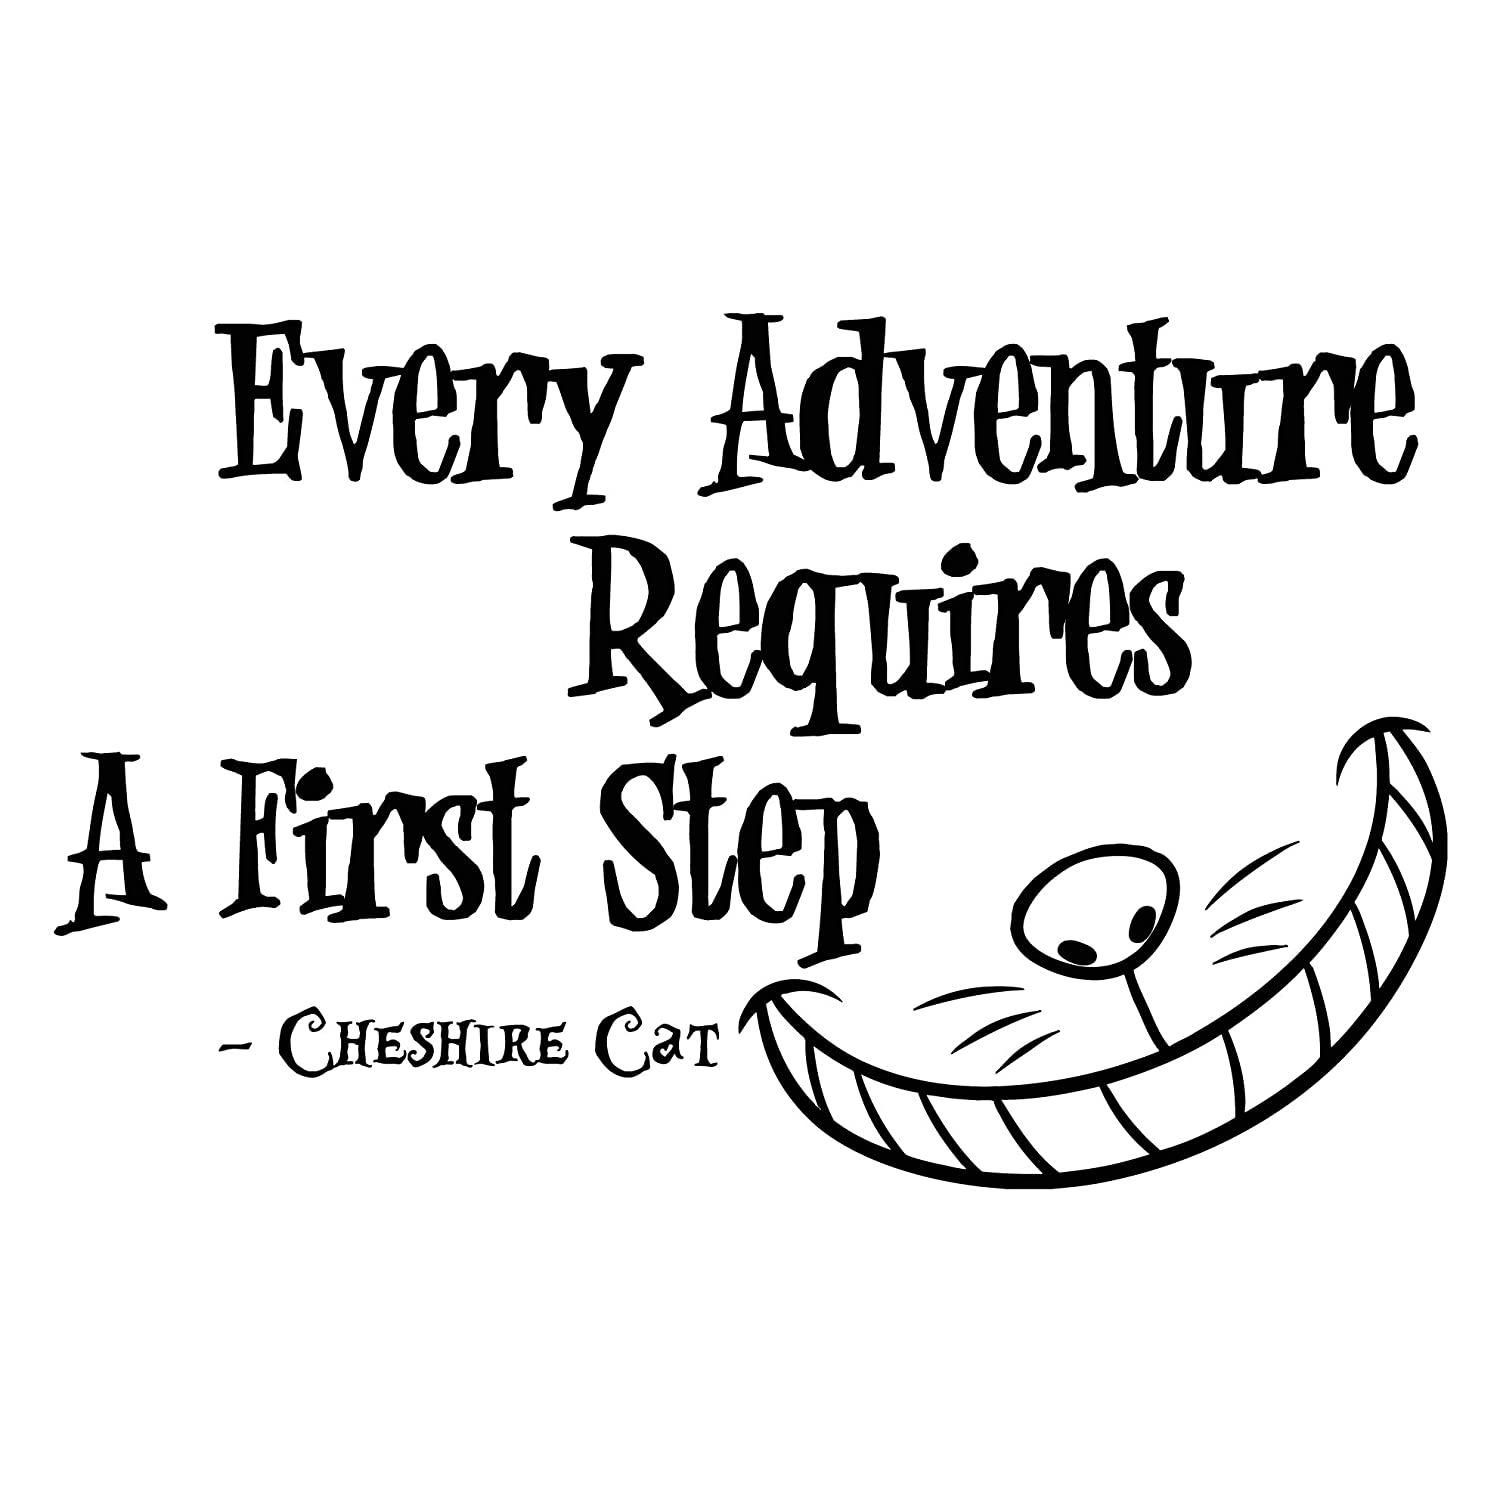 Wall Decals Quotes Alice in Wonderland - Every Adventure Requires a First  Step - Cheshire Cat Sayings Quote Smile Cat Kids Boys Girls Nursery Baby ...